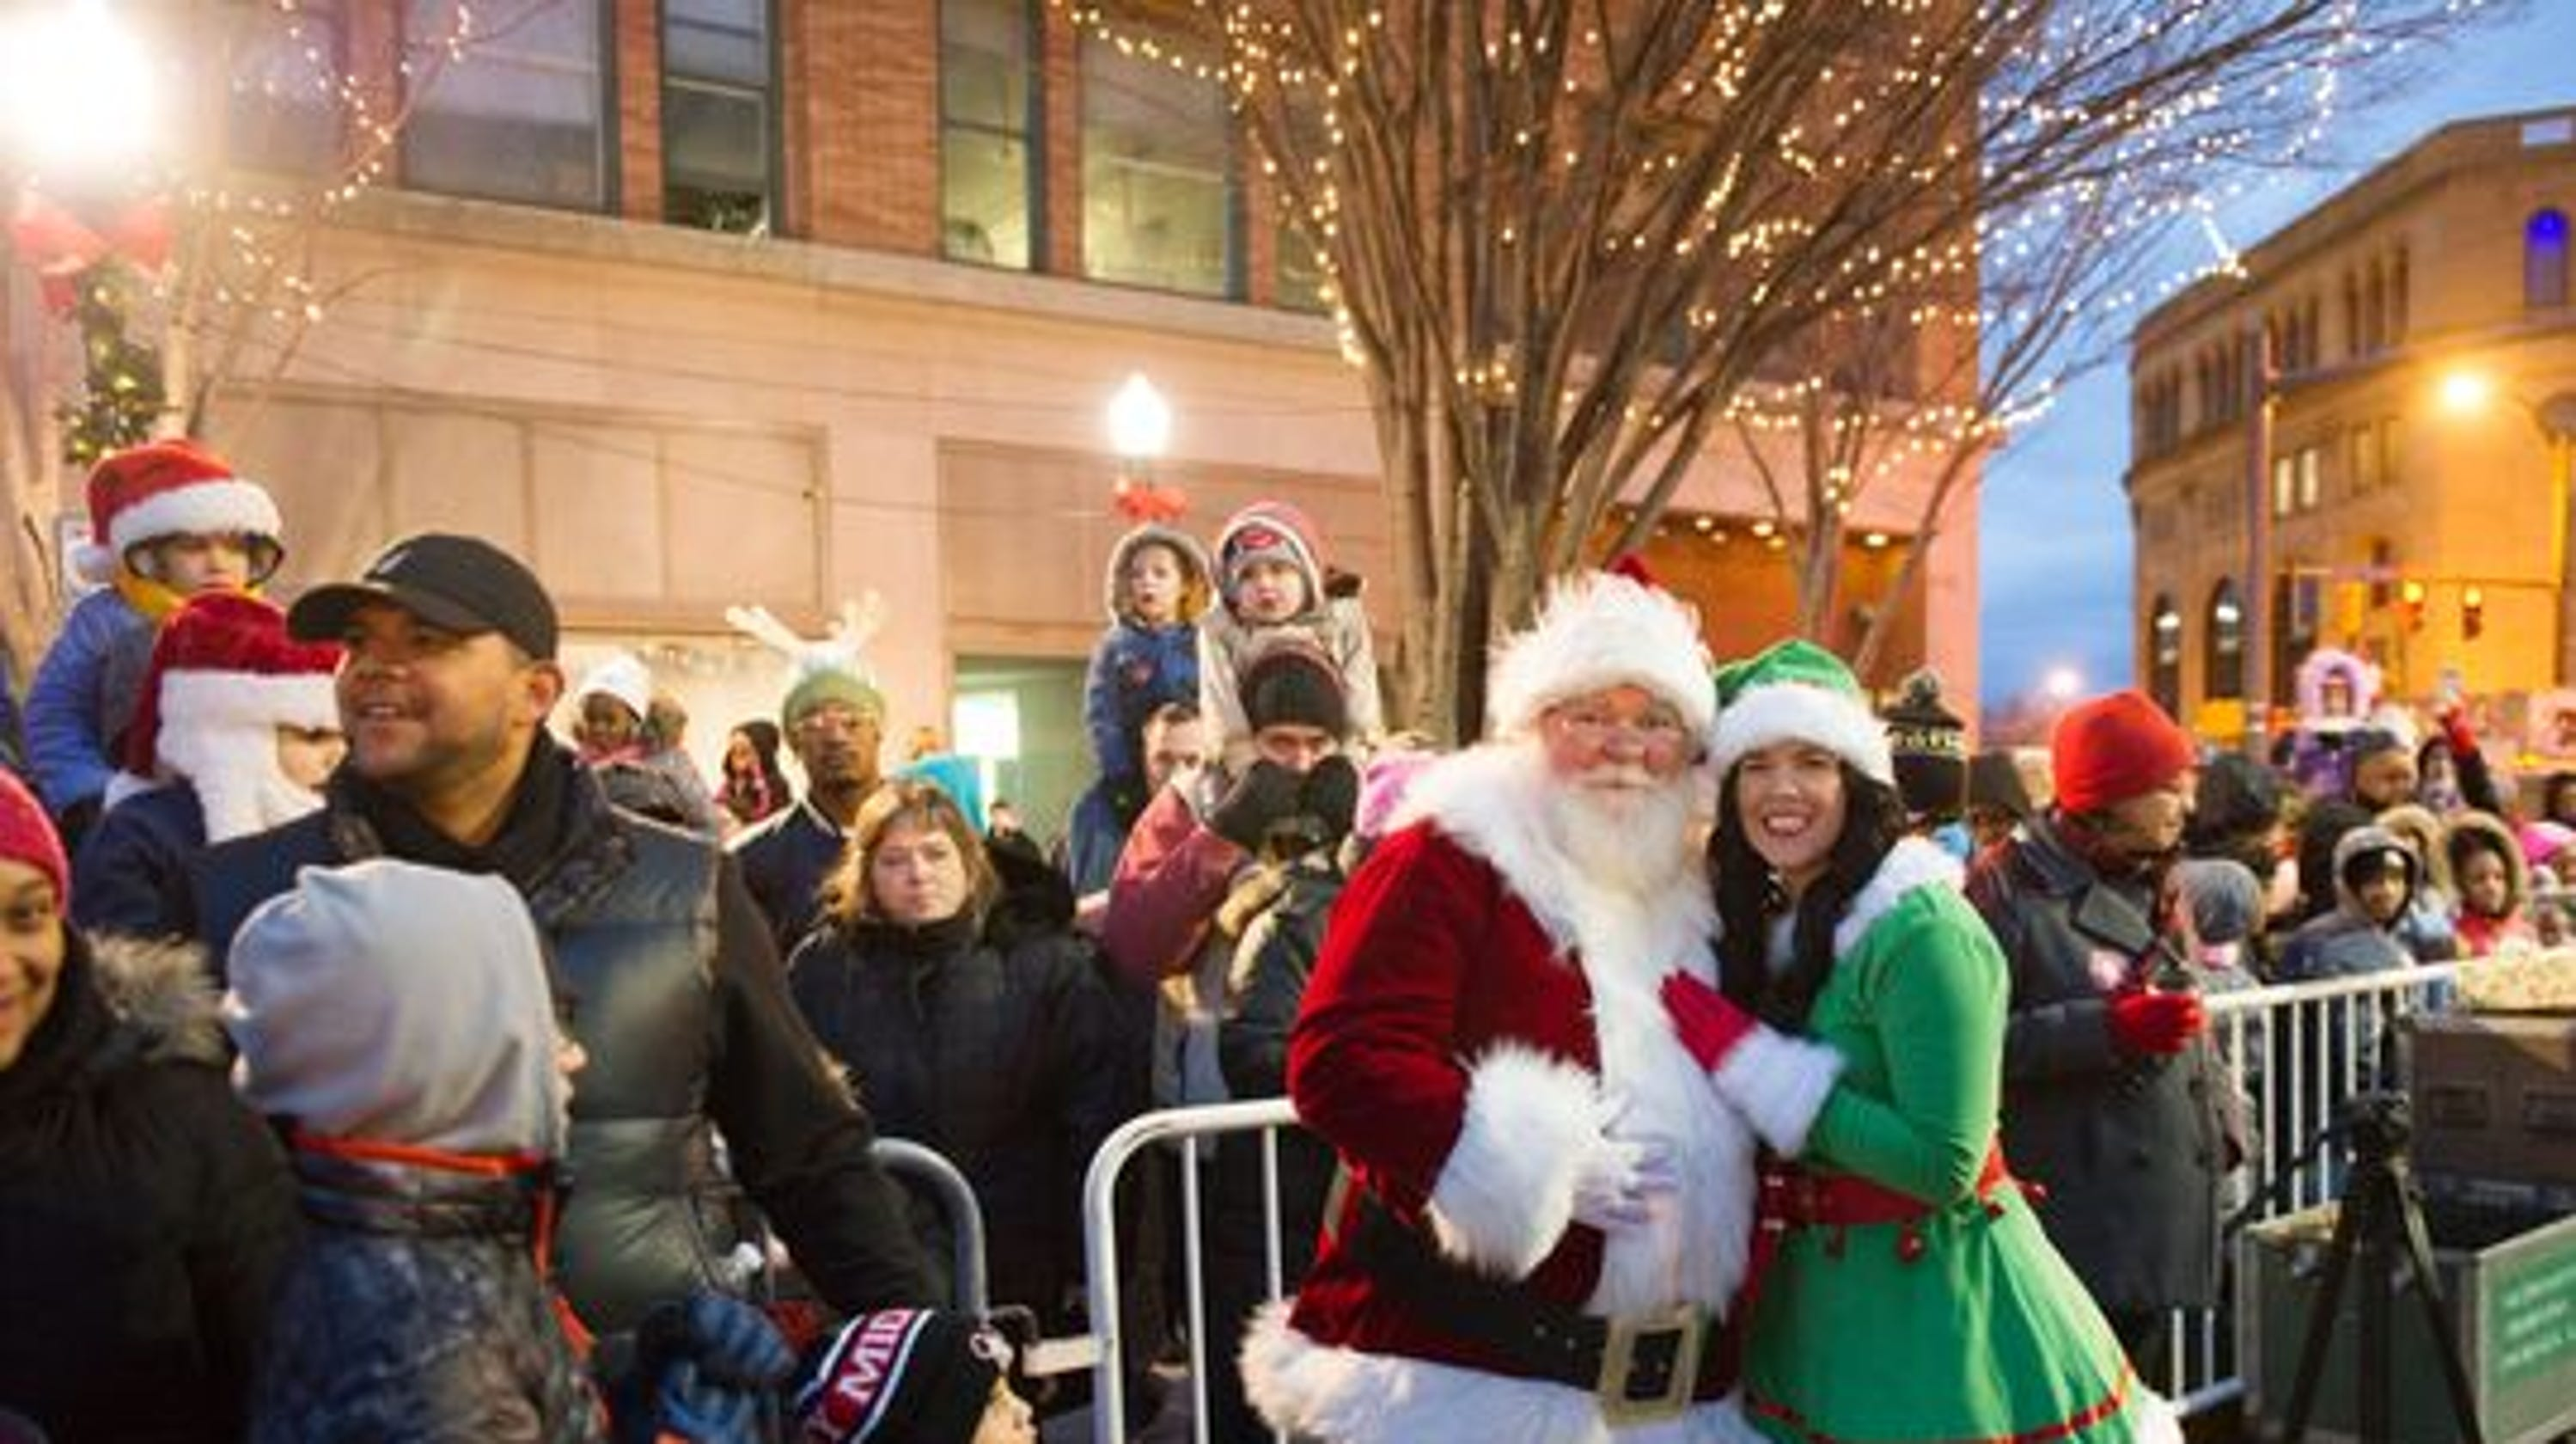 Christmas Events 2020 Nys Rochester Ny Christmas Events 2020 | Ptugnp.christmasmerry.site